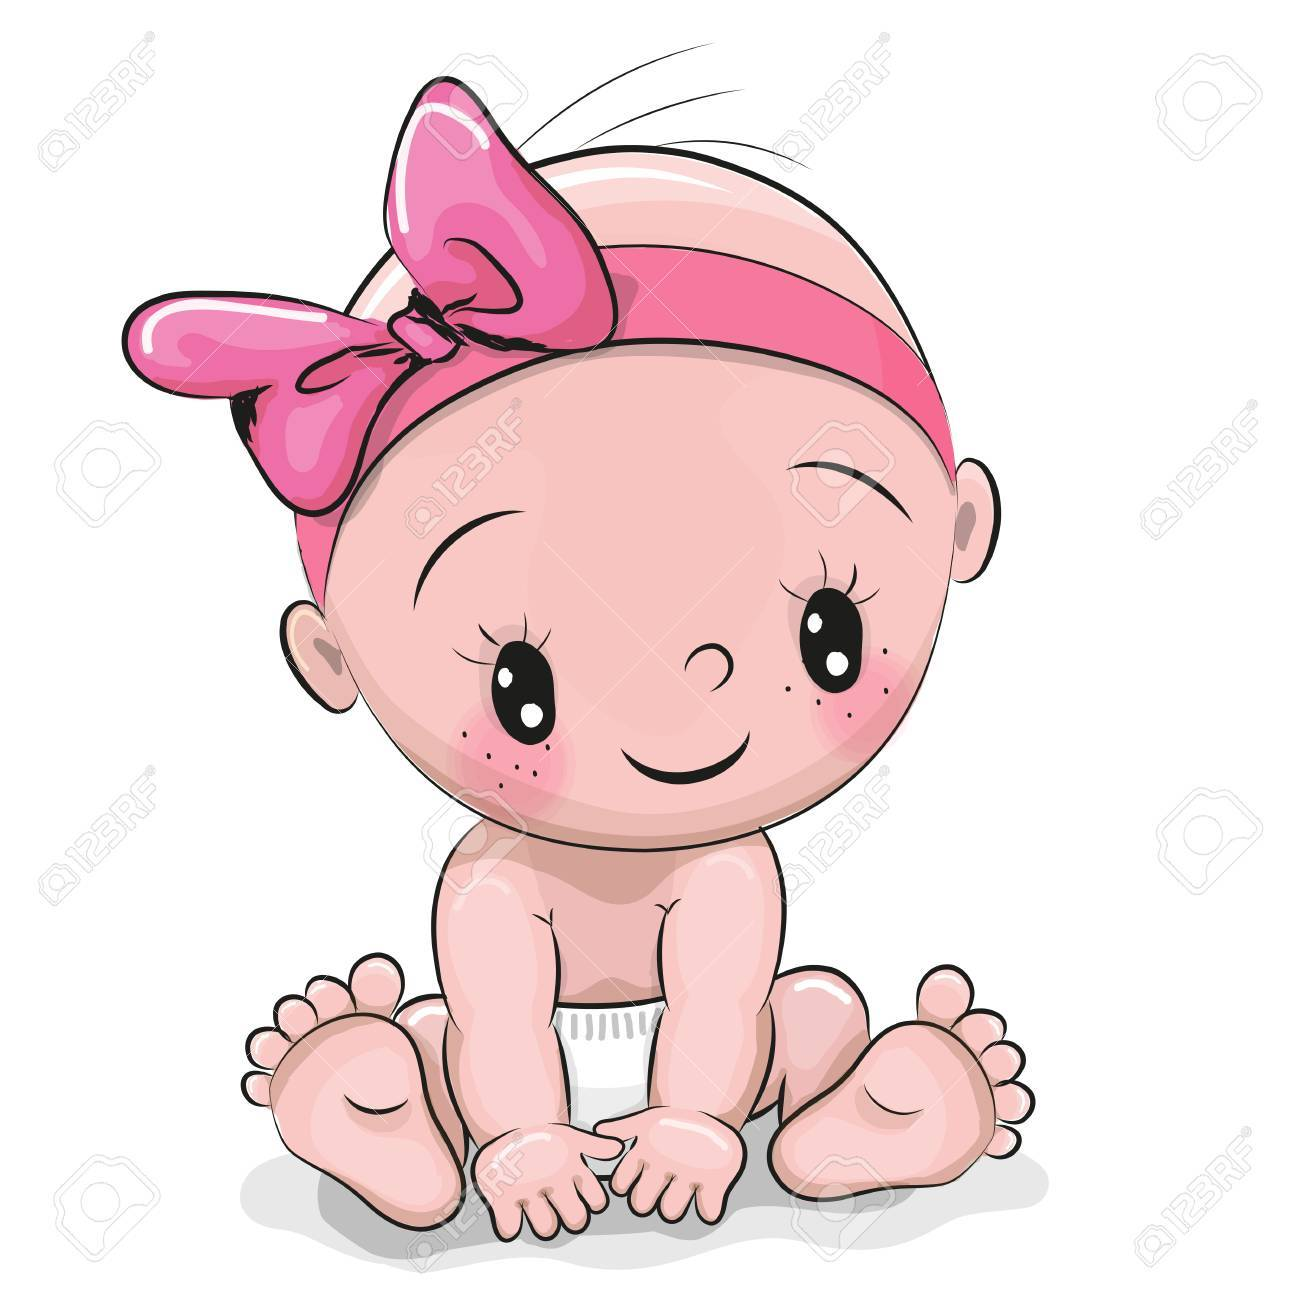 Cute cartoon baby girl isolated on a white background.